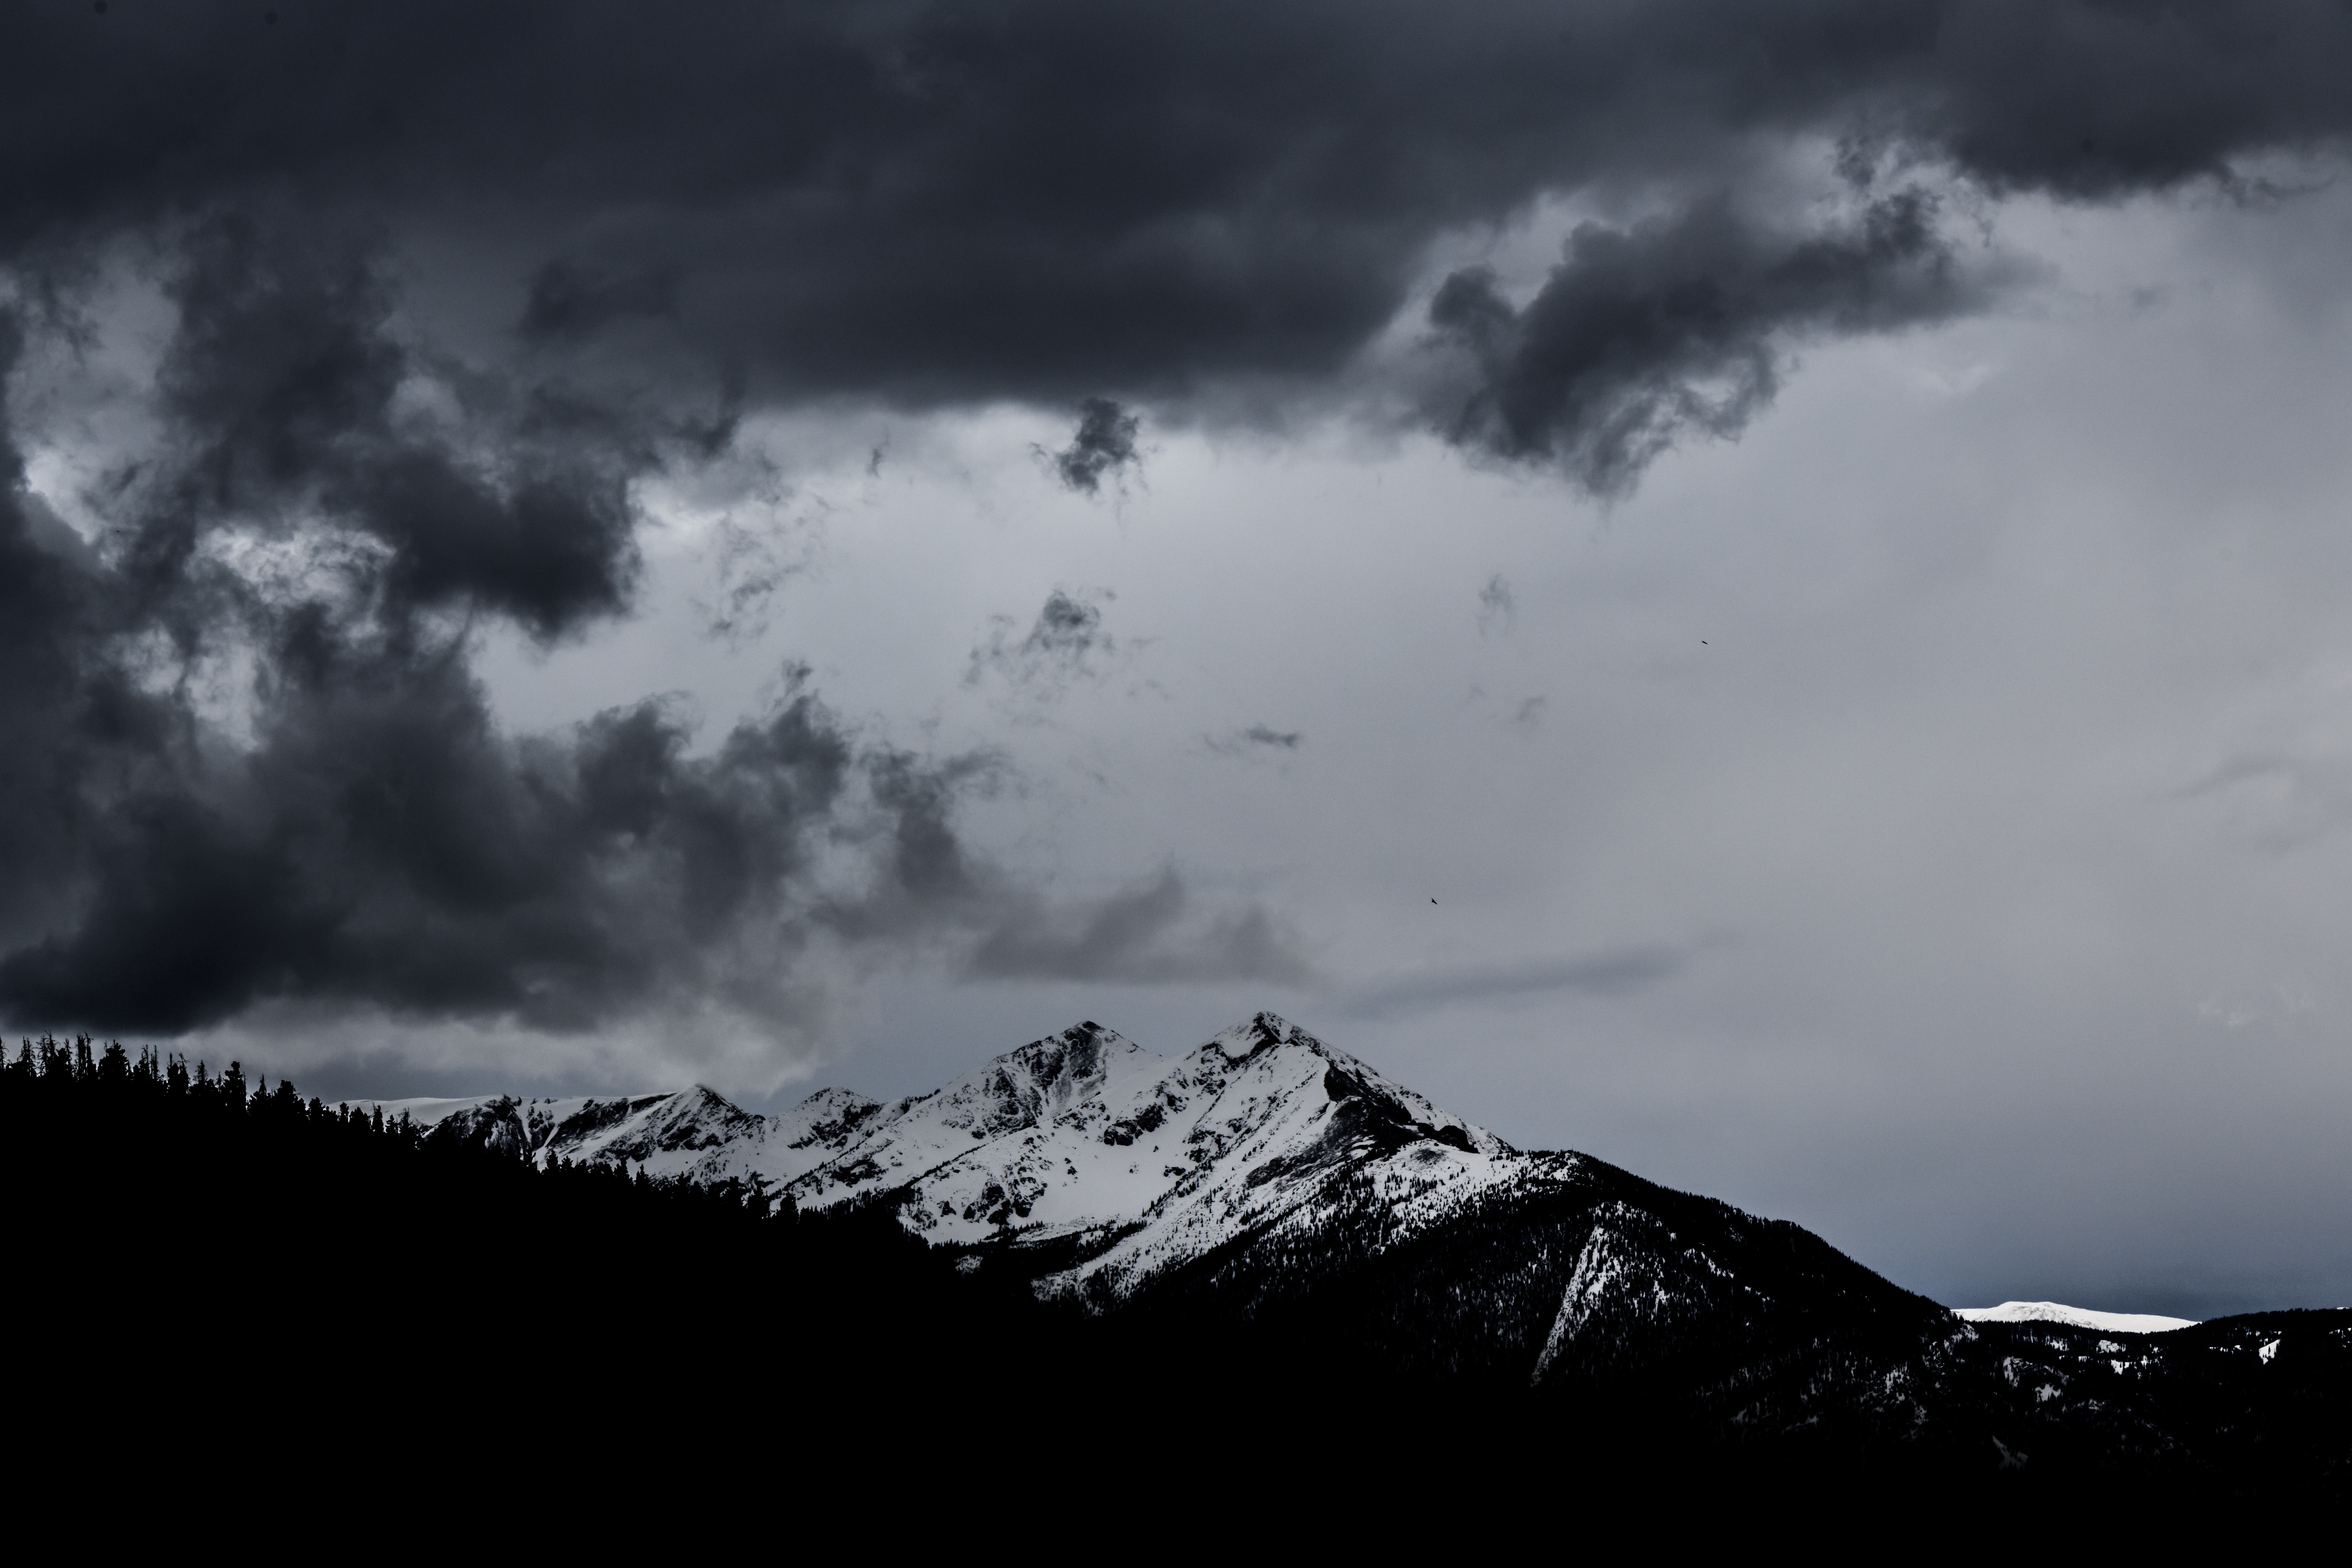 snowy mountain under dramatic clouds